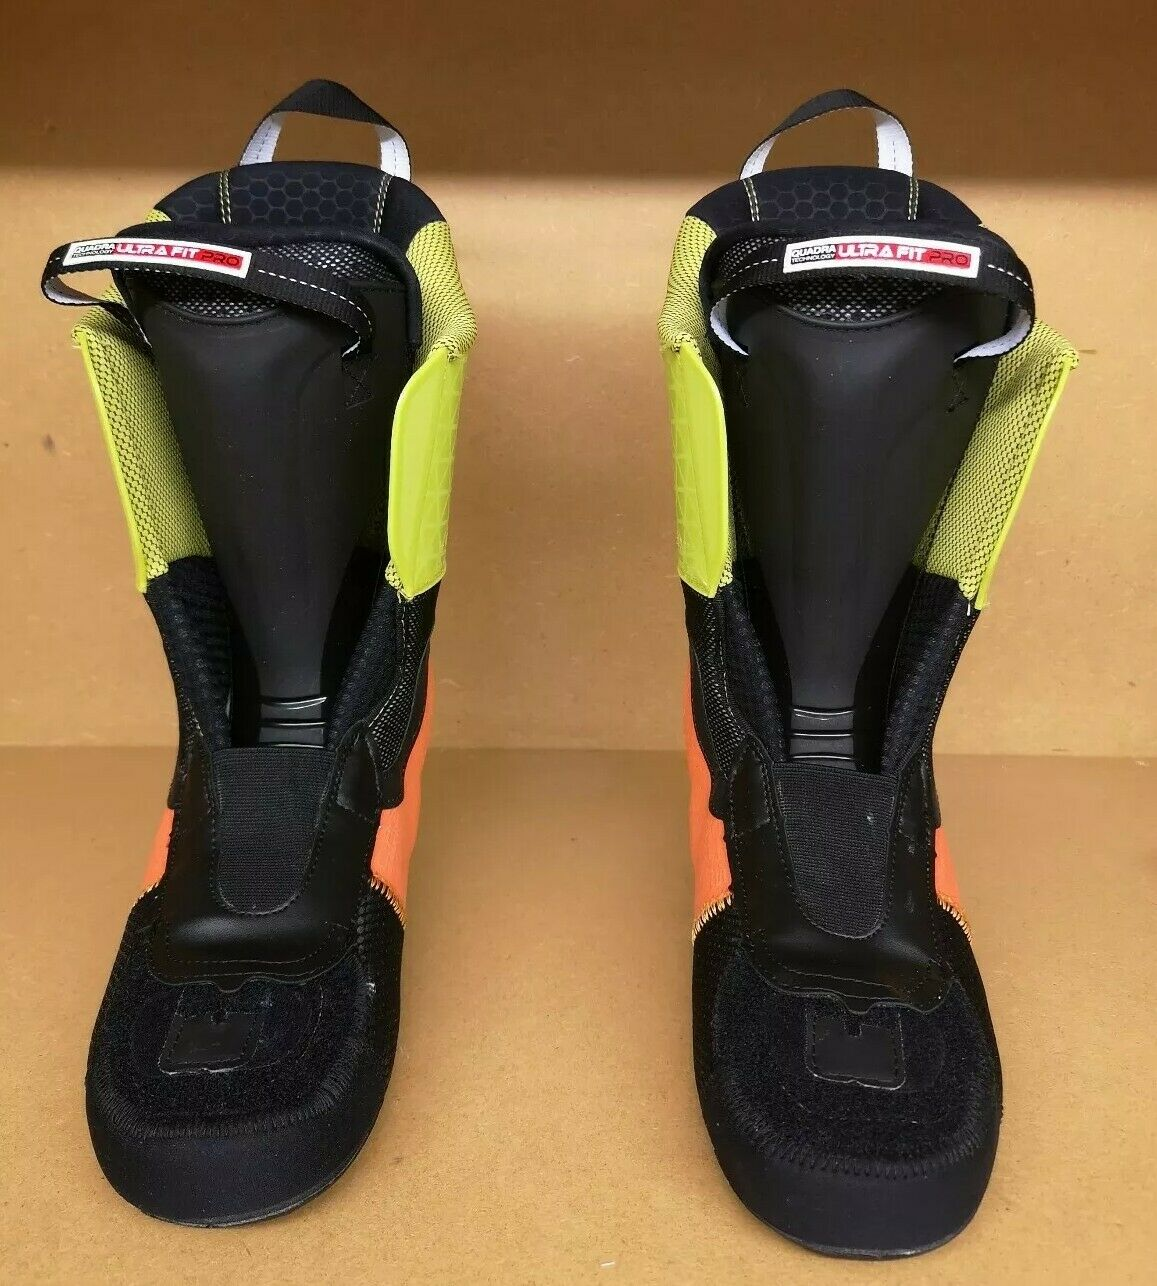 Brand  new inners for ski boots - TECNICA - size 26.5 - Perfect condition  online retailers